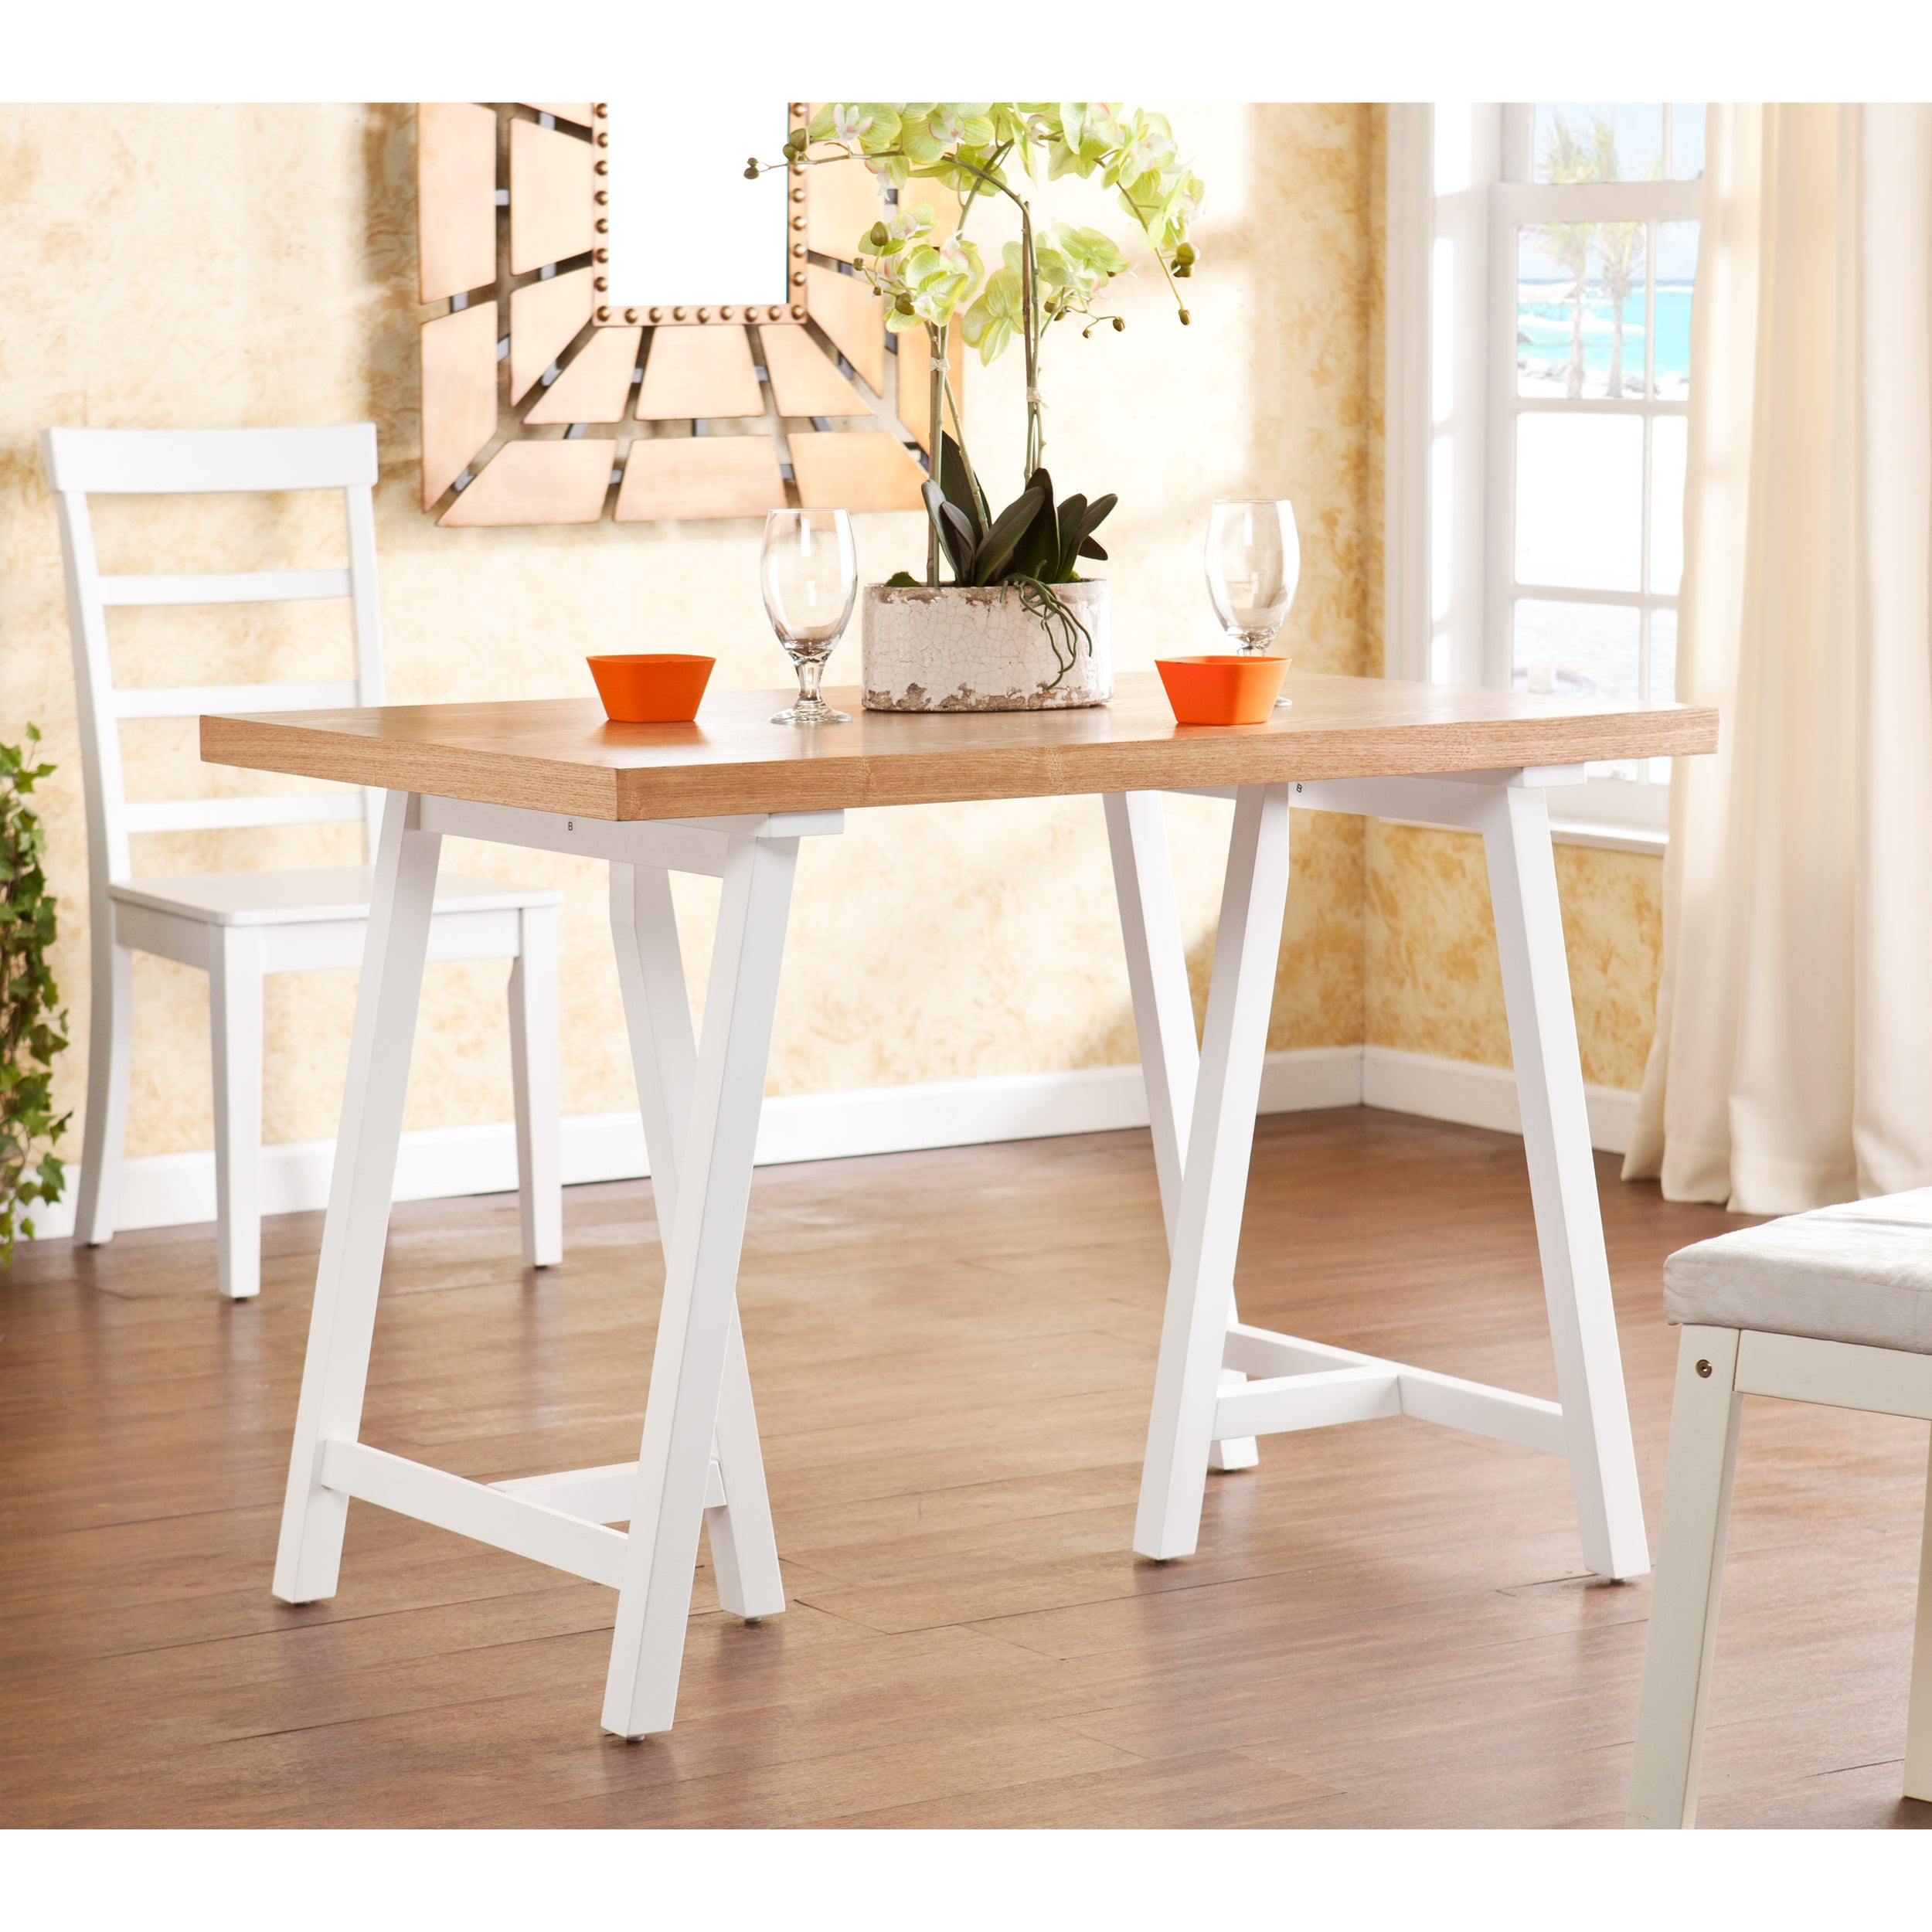 Upton Home Glenwest White and Natural Pine Dining Table at Sears.com